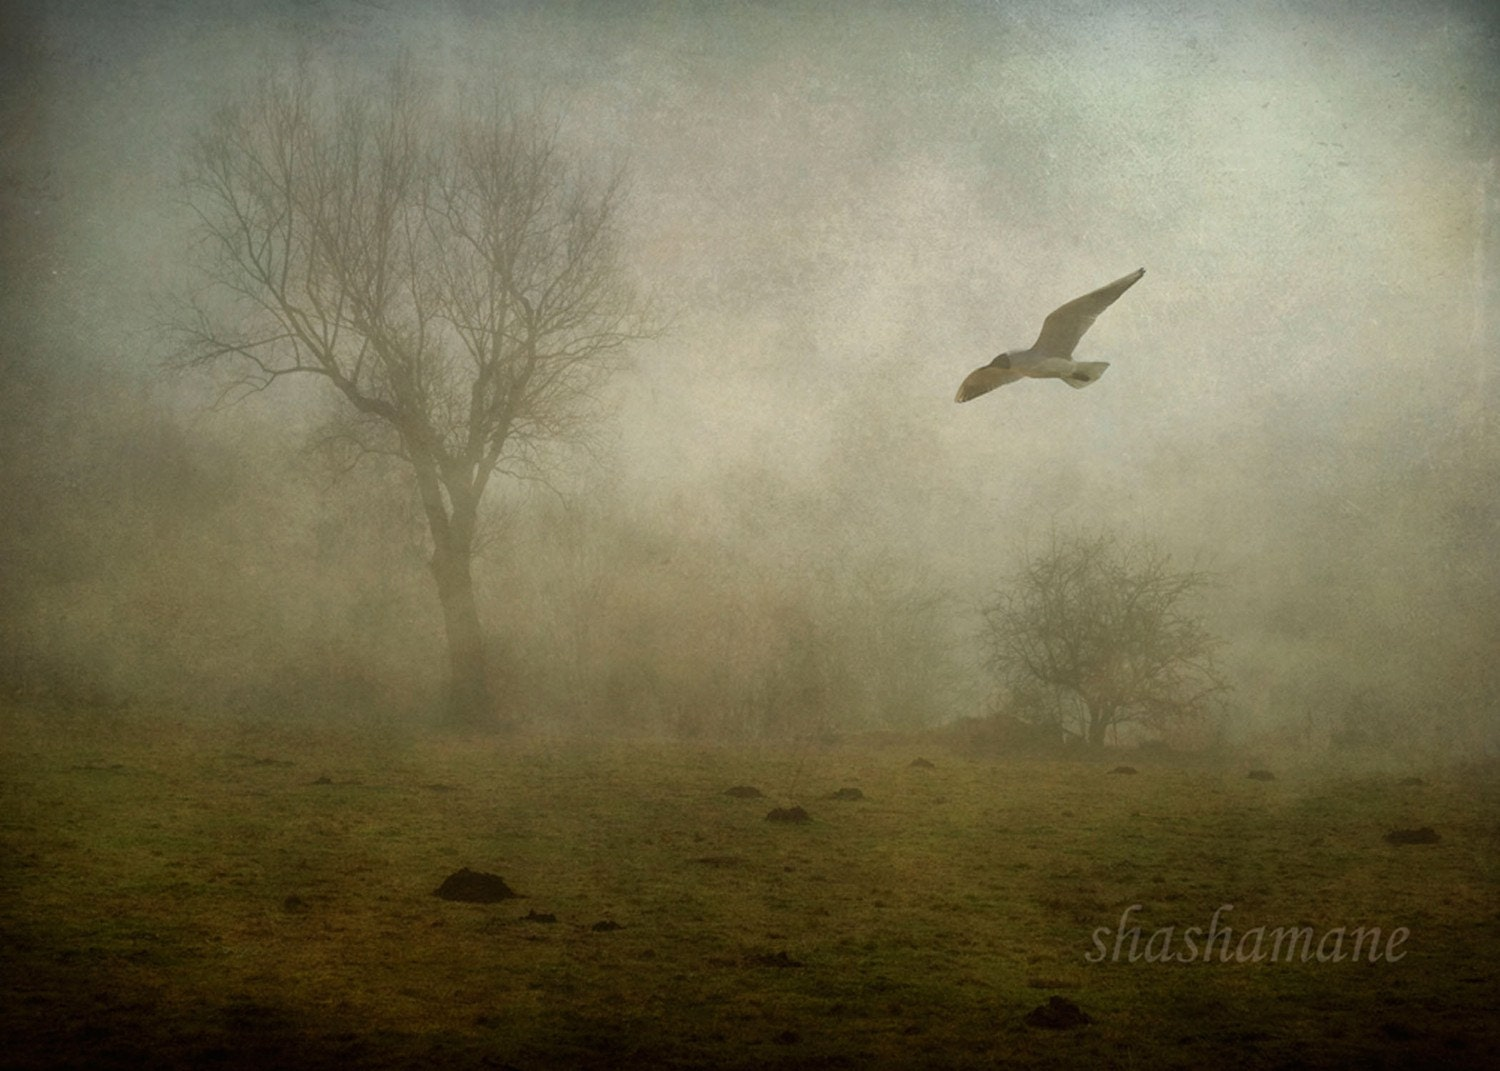 Bird on the misty moors print 8x12 haunting winter gothic scene - shashamane